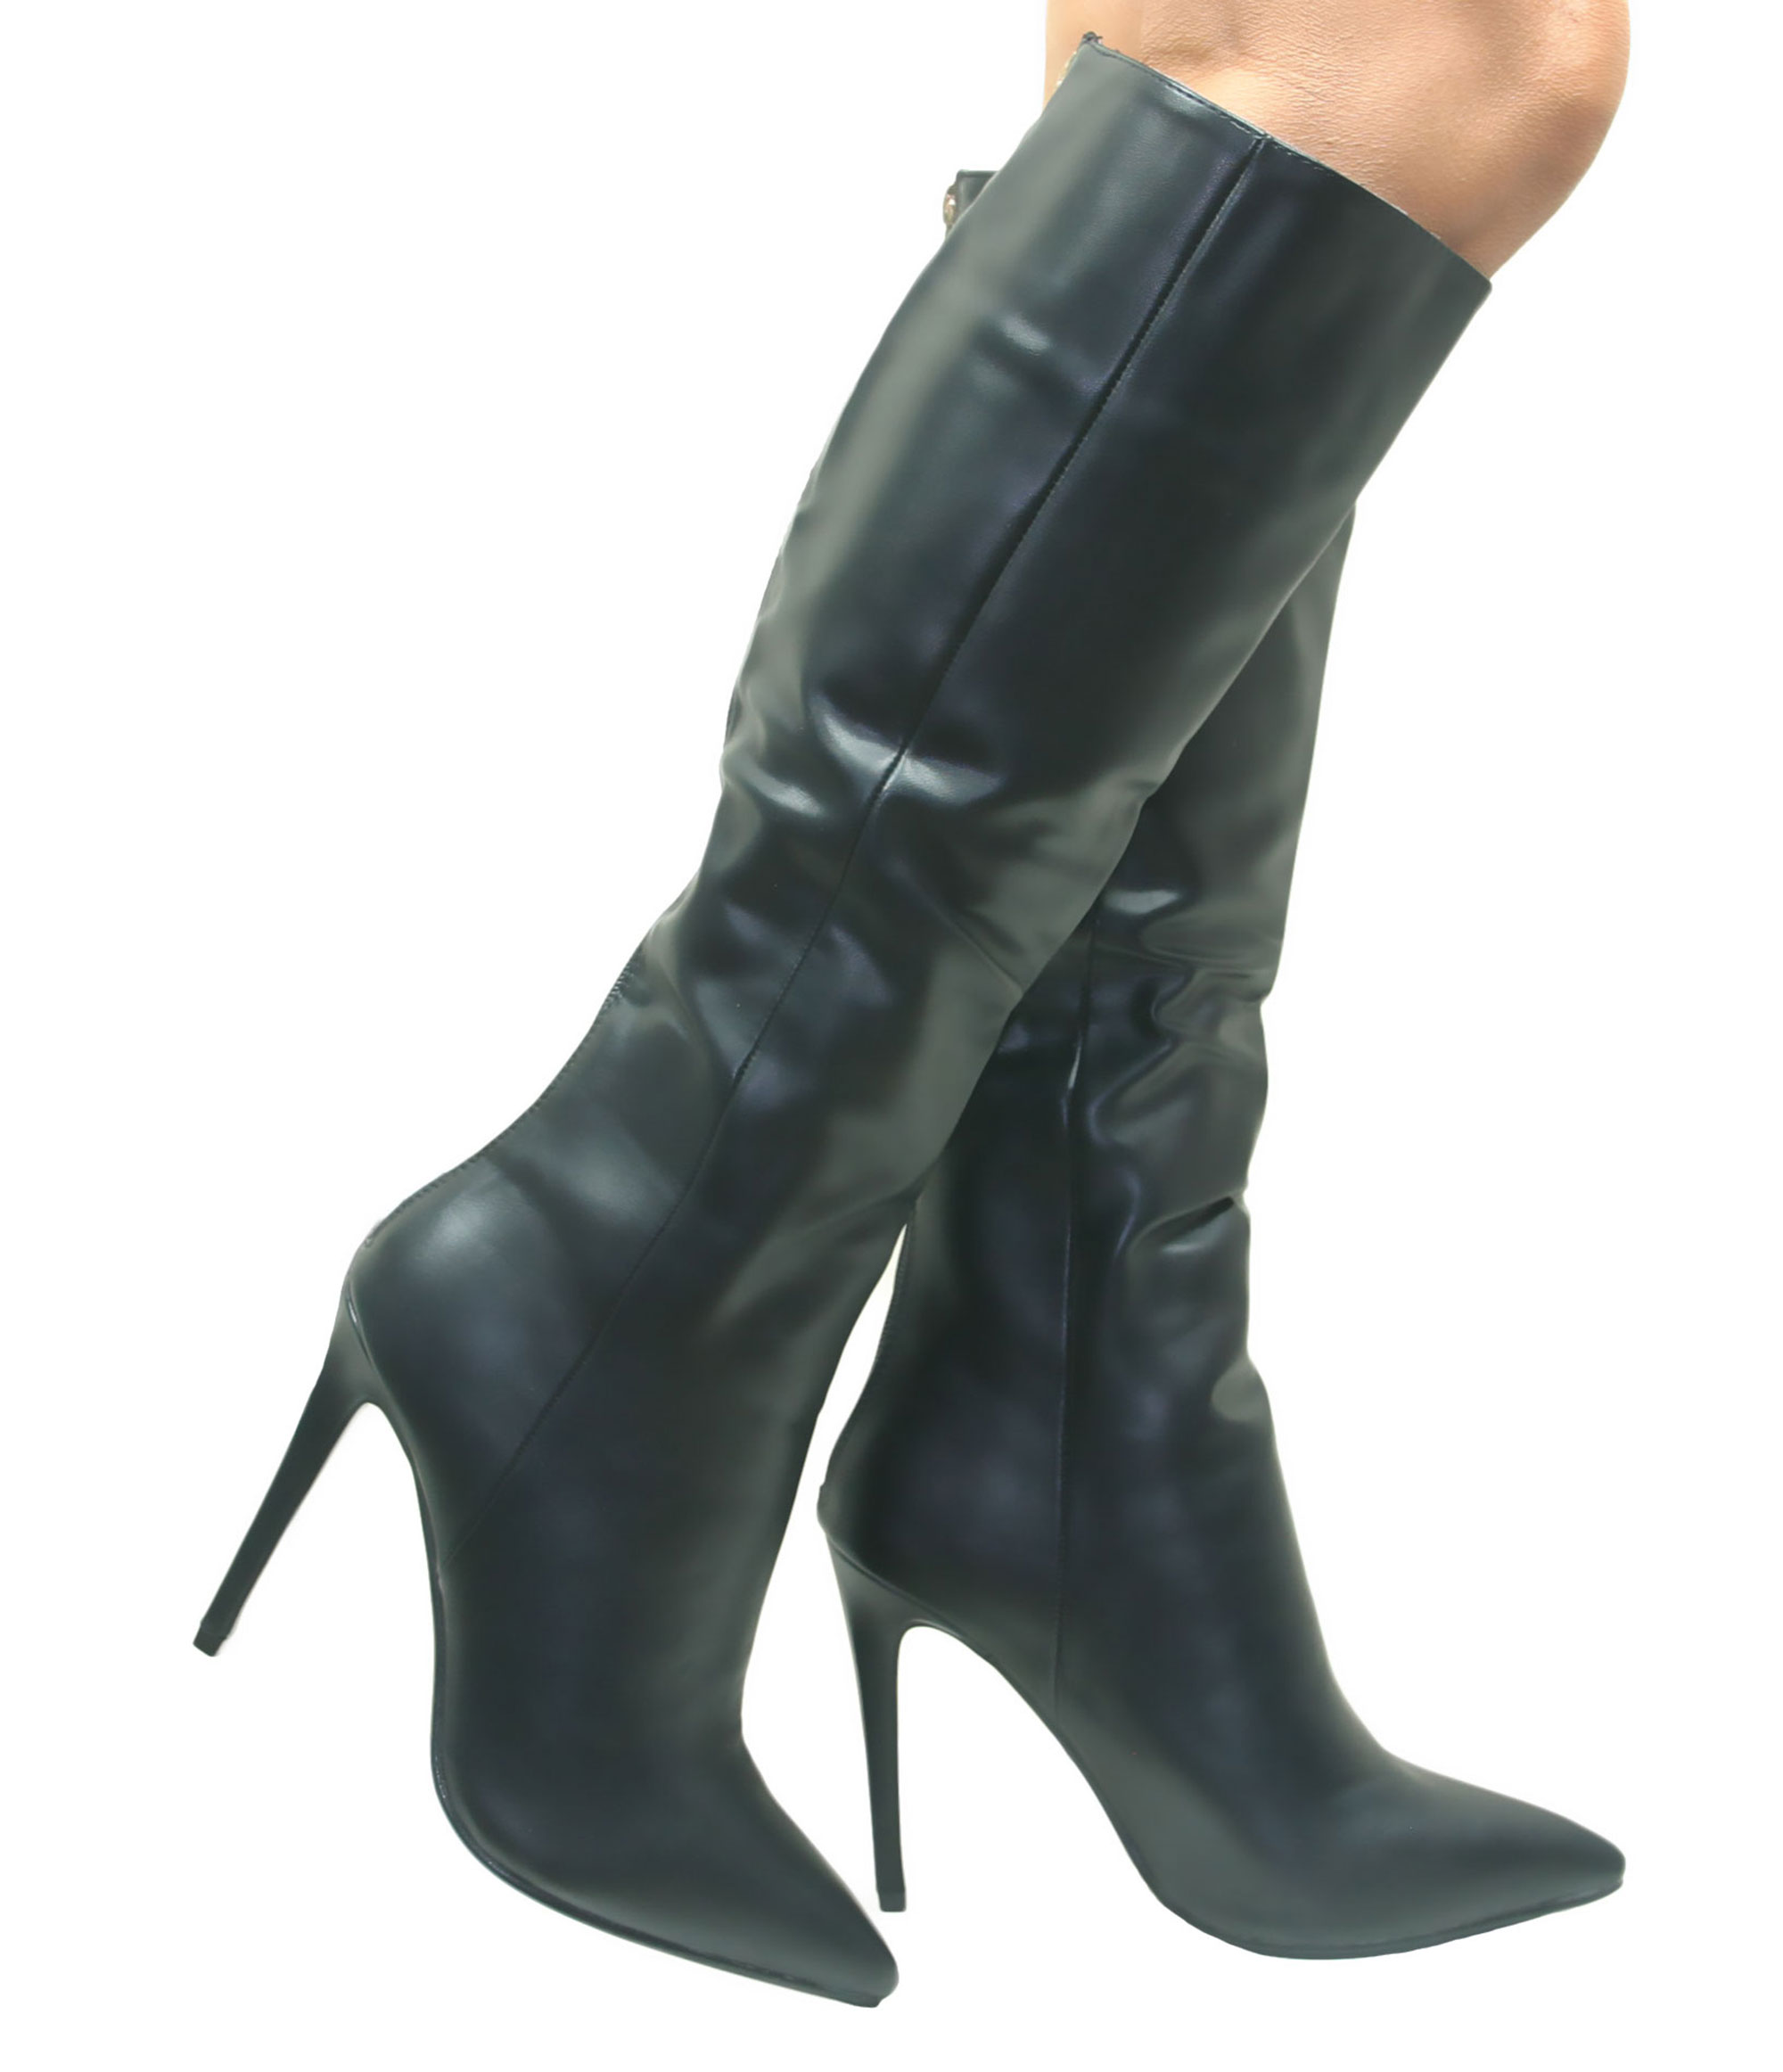 ca48515a8db Black Leather Knee High Boots Heel | Boot End